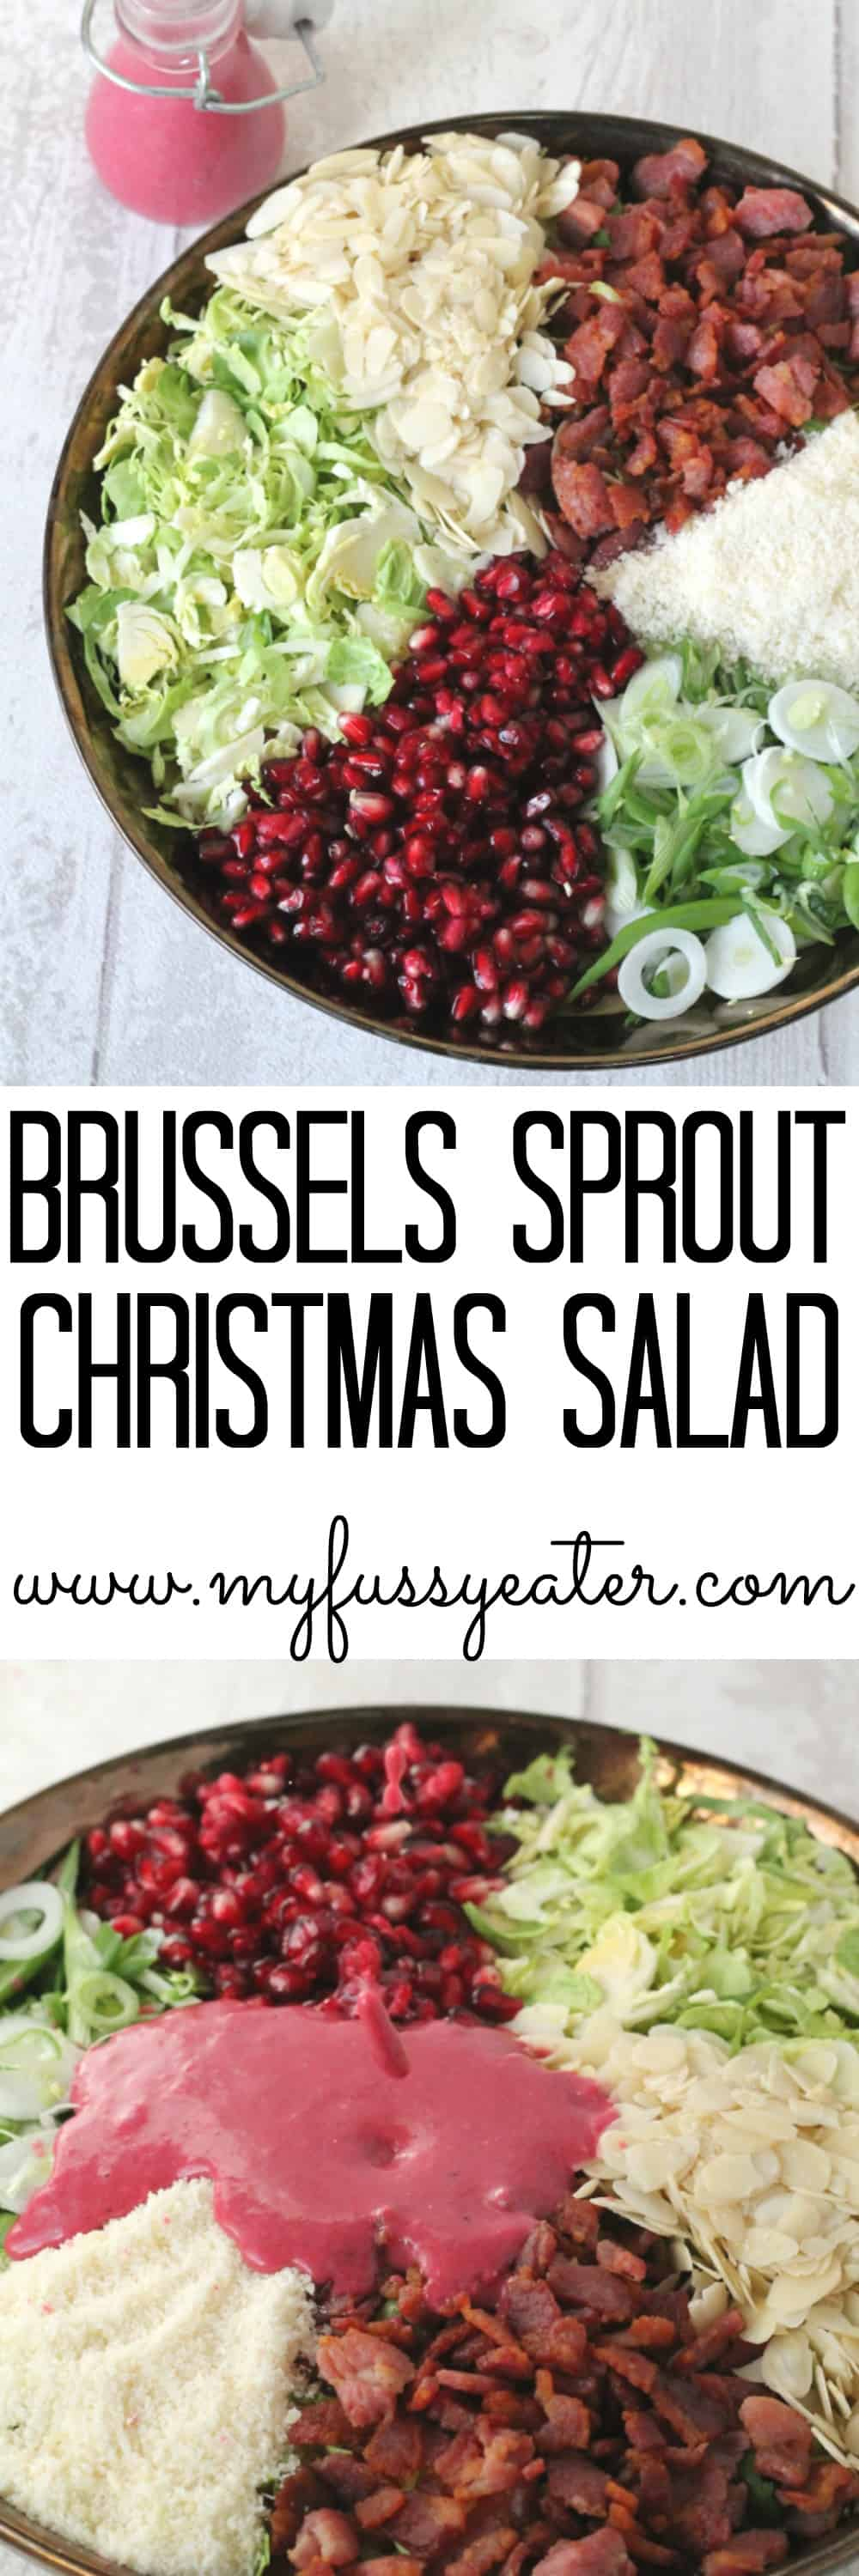 brussels sprouts christmas salad pinterest pin